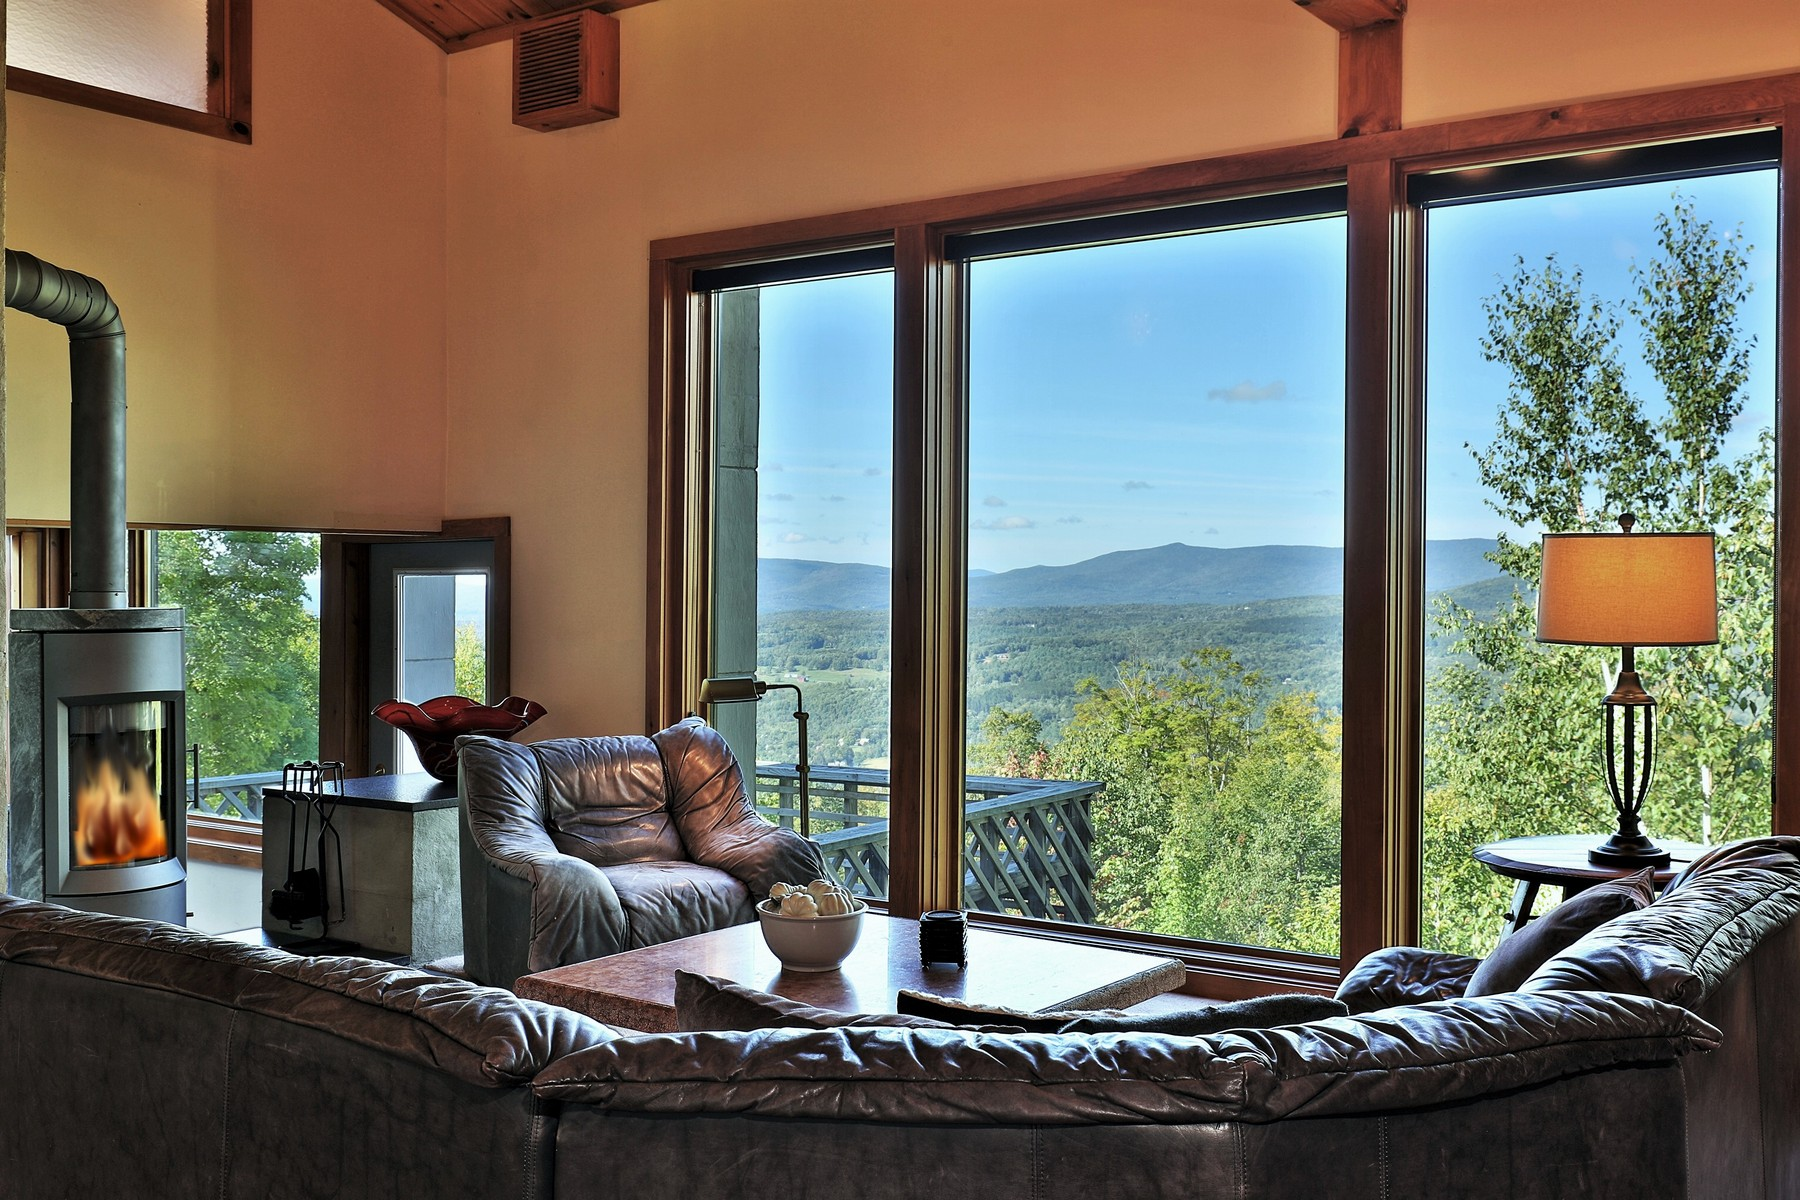 Single Family Homes for Sale at Contemporary Chalet with Stunning Mountain Views 935 Andover Ridge Rd Andover, Vermont 05143 United States